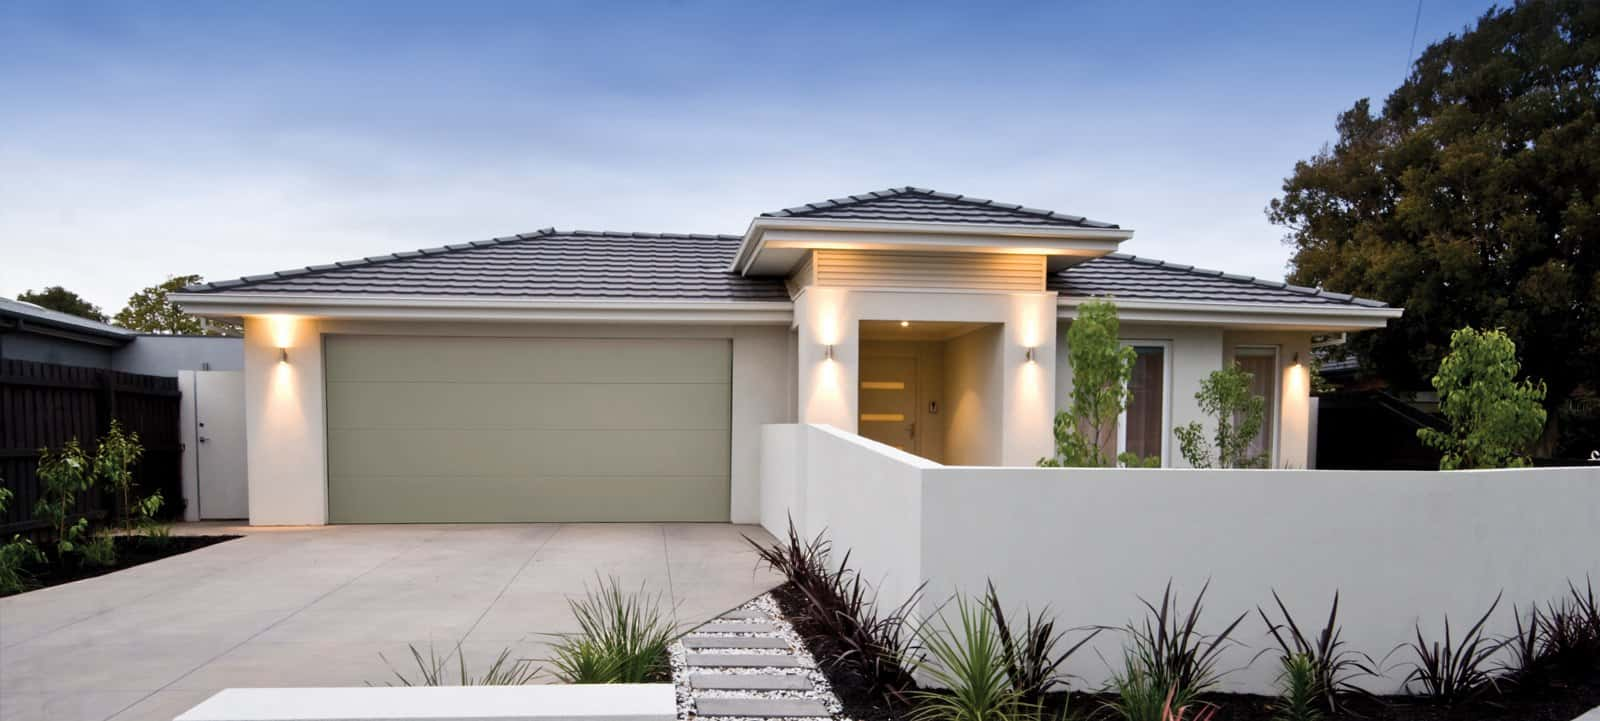 Panelift Icon Garage Door Adelaide